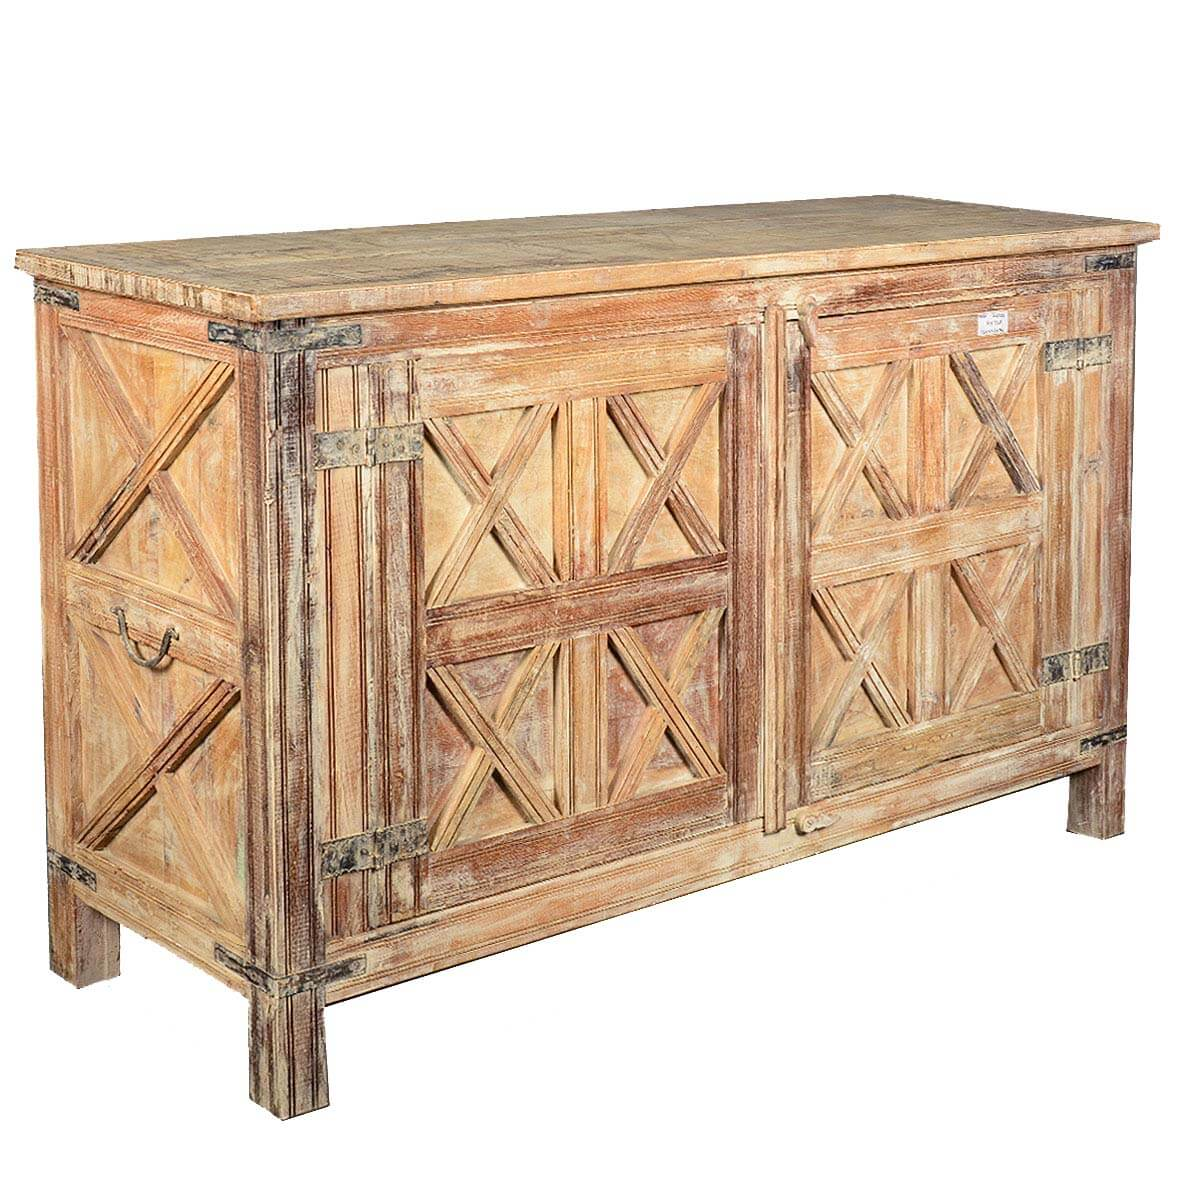 Rustic reclaimed wood door storage buffet cabinet with